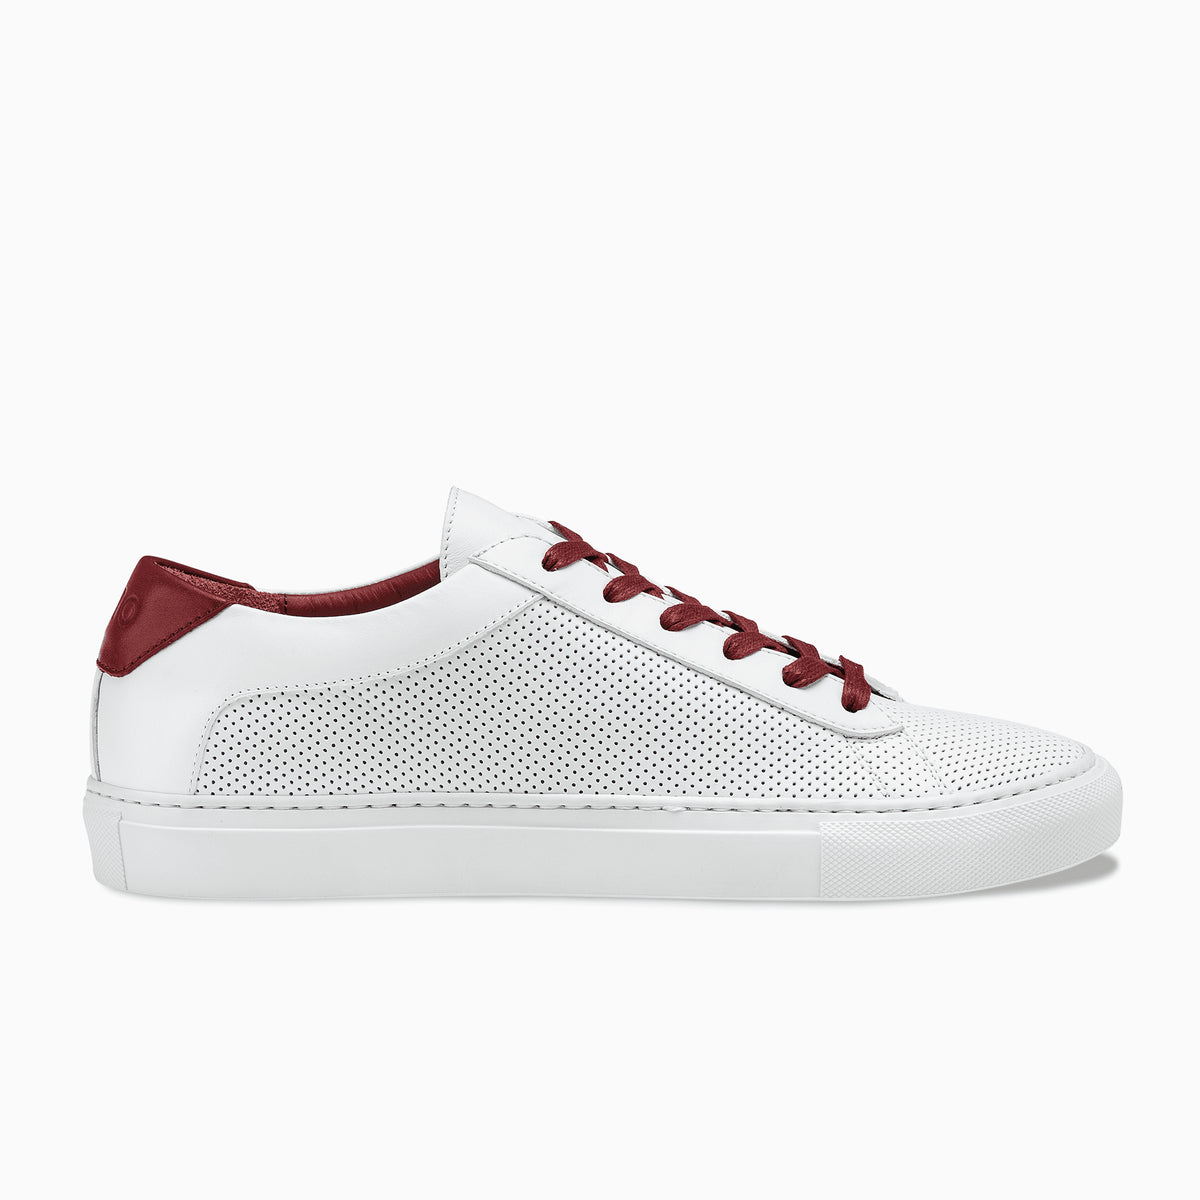 Women S Low Top Sneaker In White Red Capri Red Chili